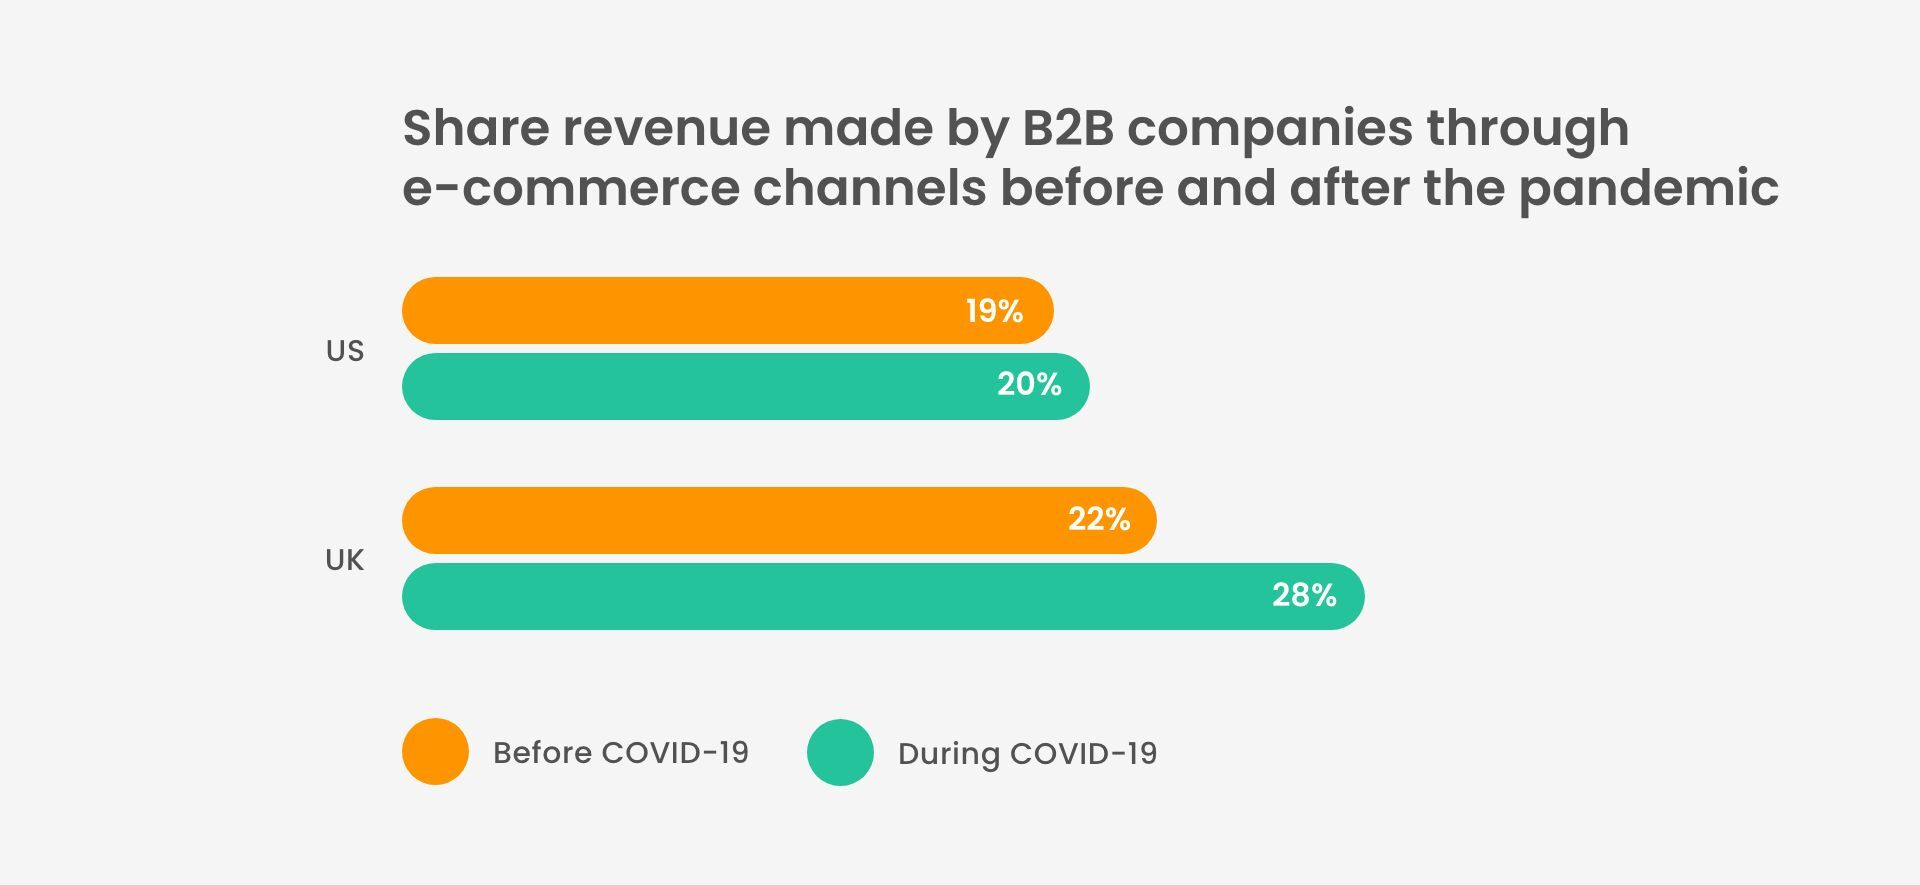 What is the share of revenue made by B2B companies before and after the pandemic